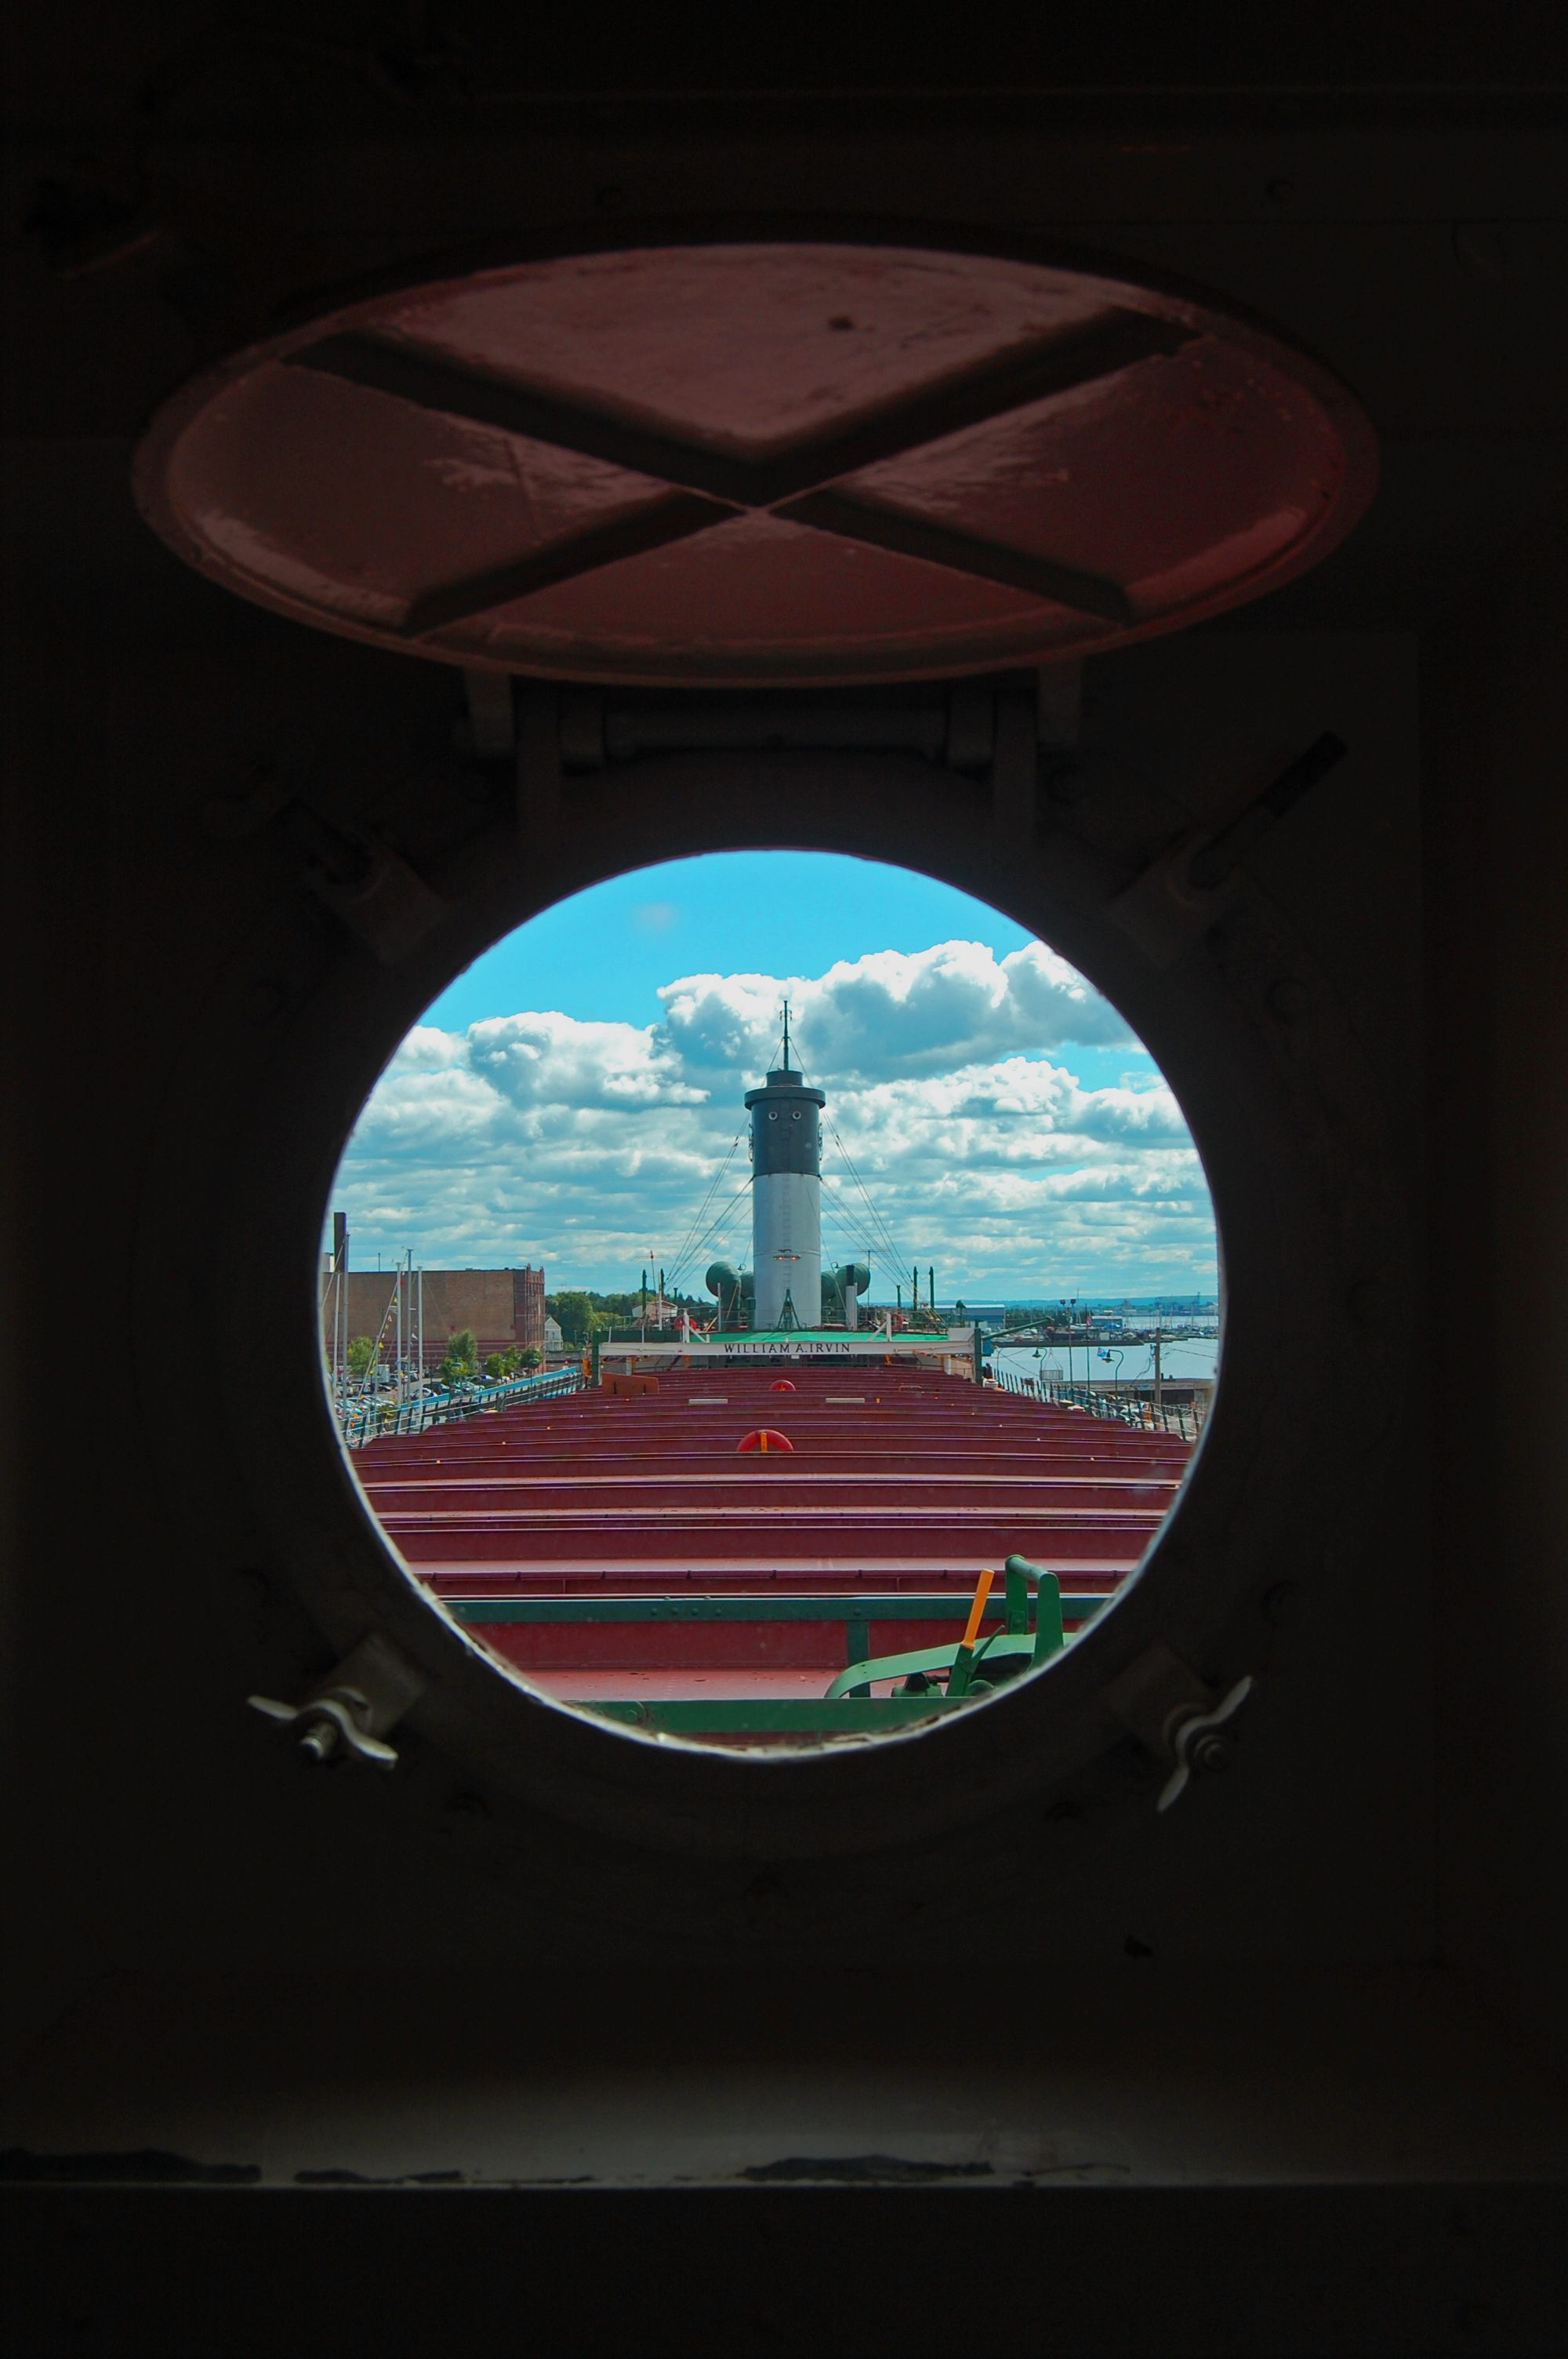 Through the Porthole Irvin in Duluth, MN